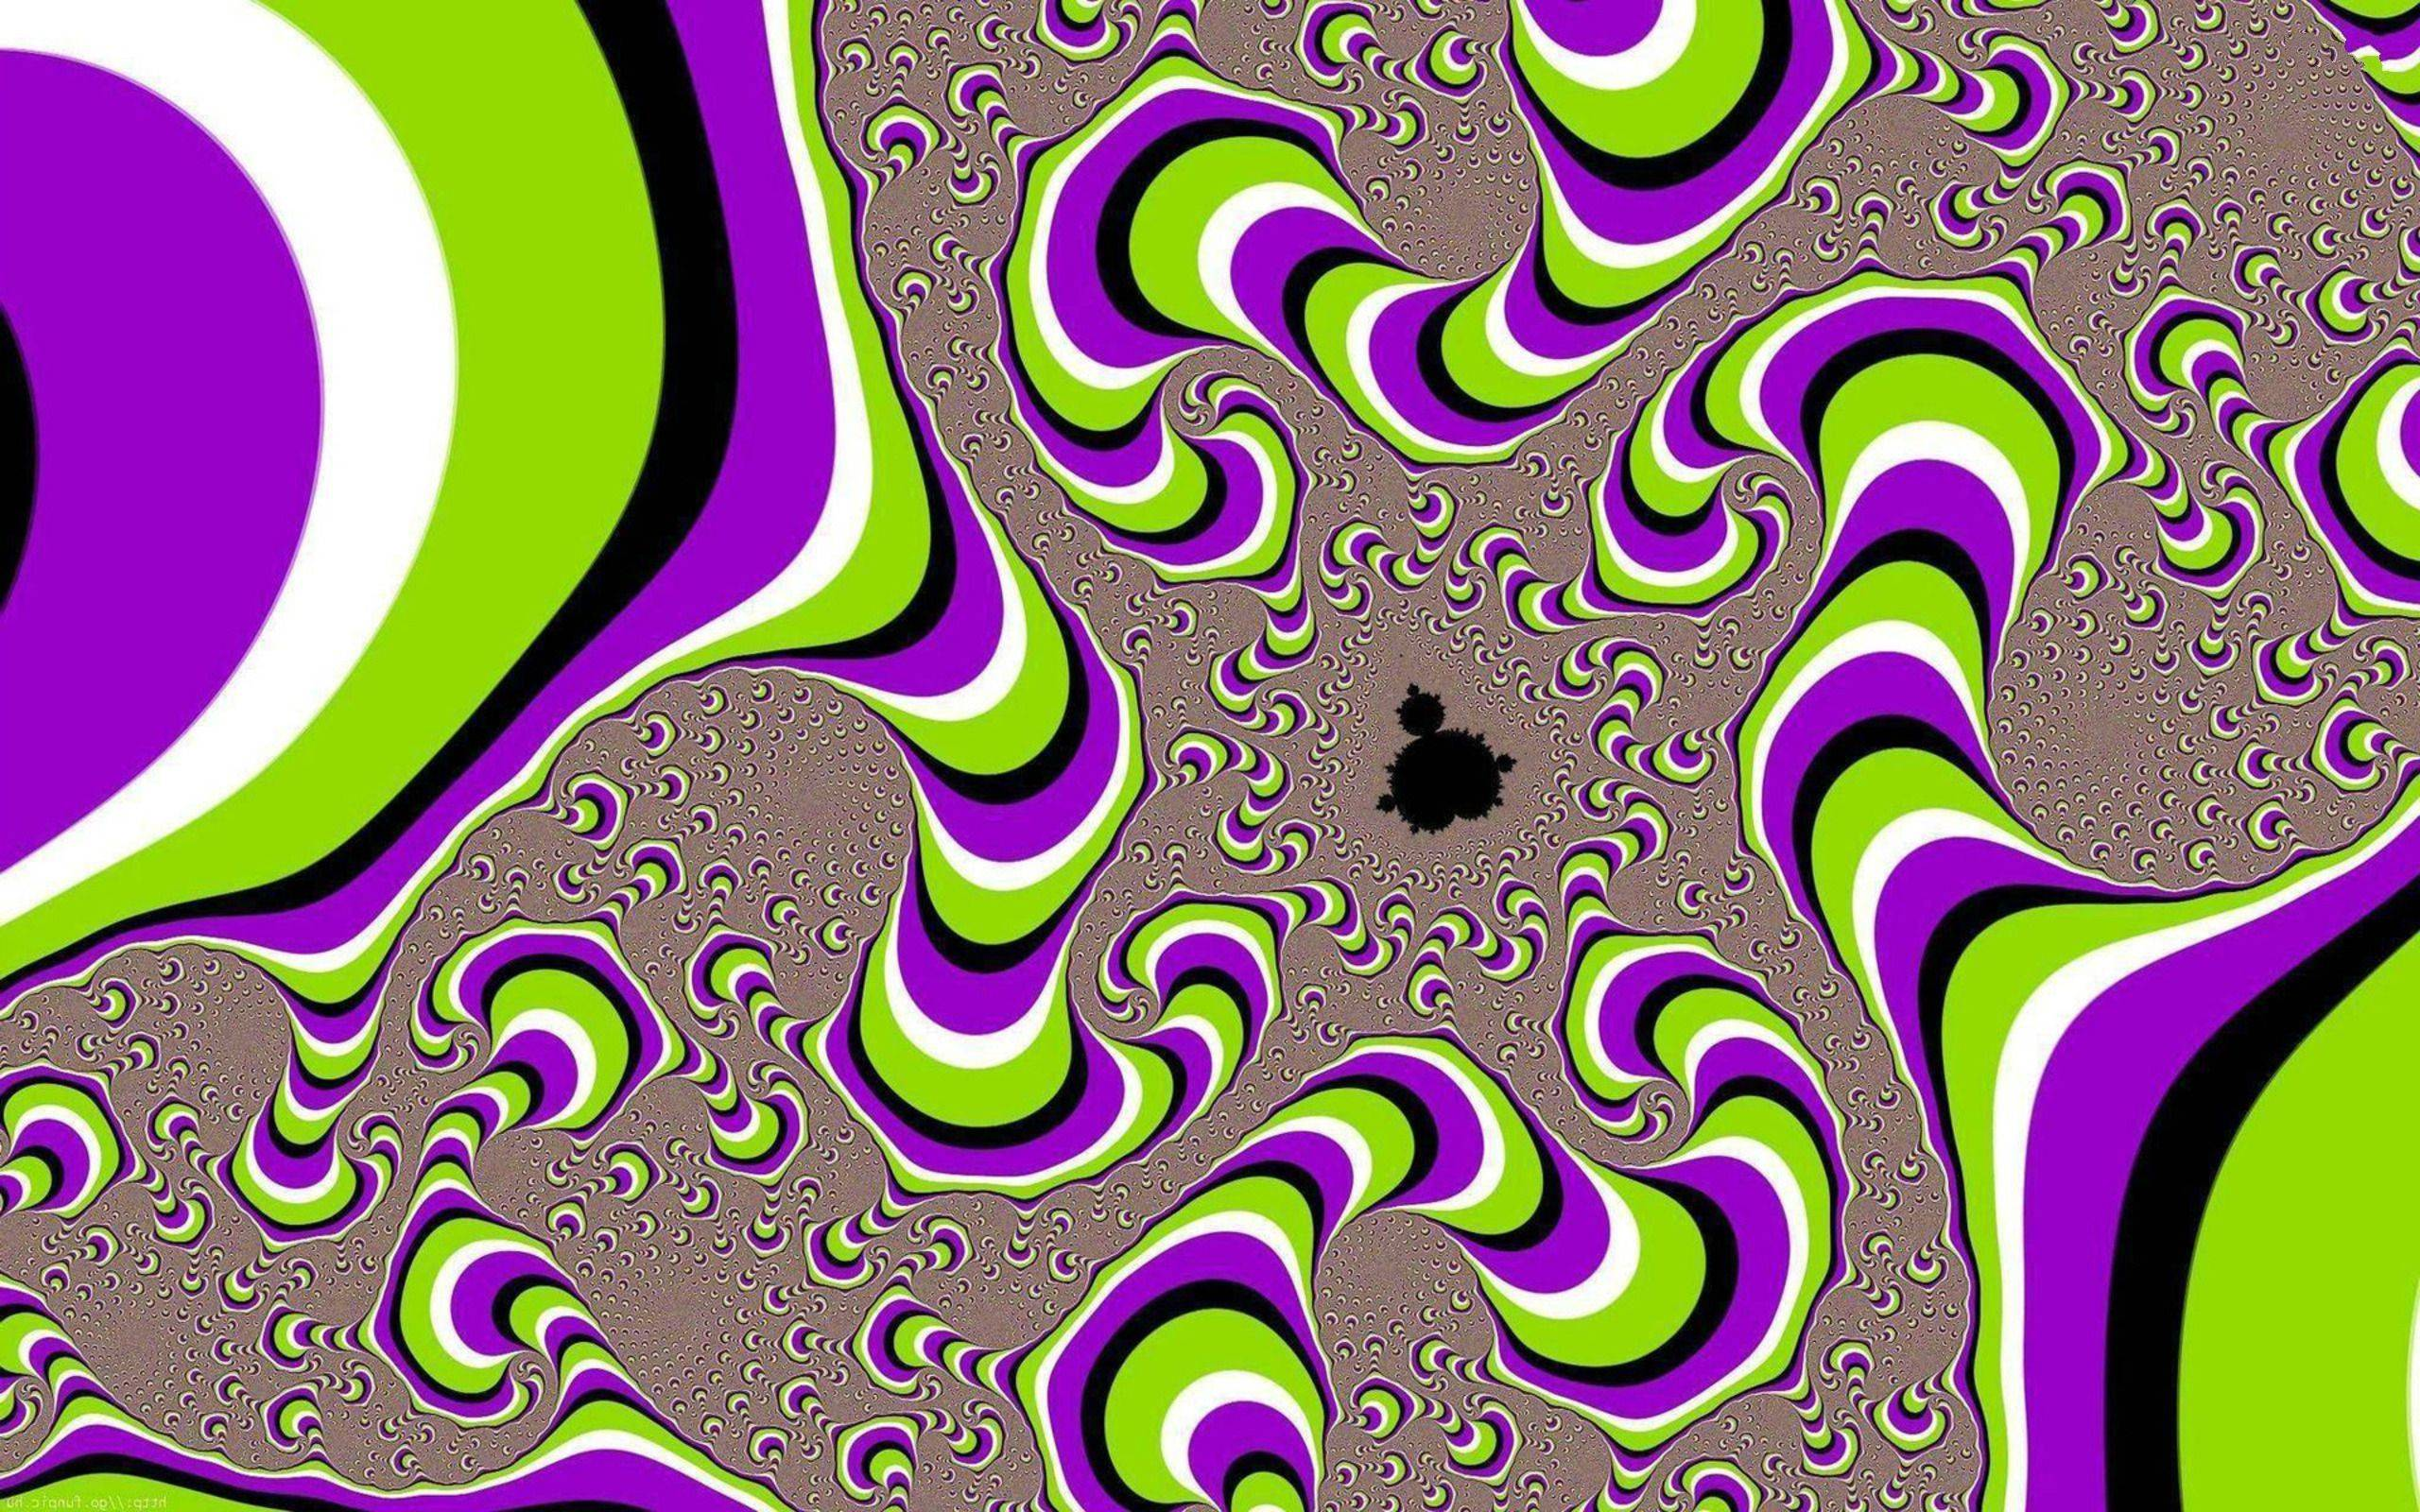 Iphone Wallpaper Trippy Hypnotic Backgrounds Wallpaper Cave